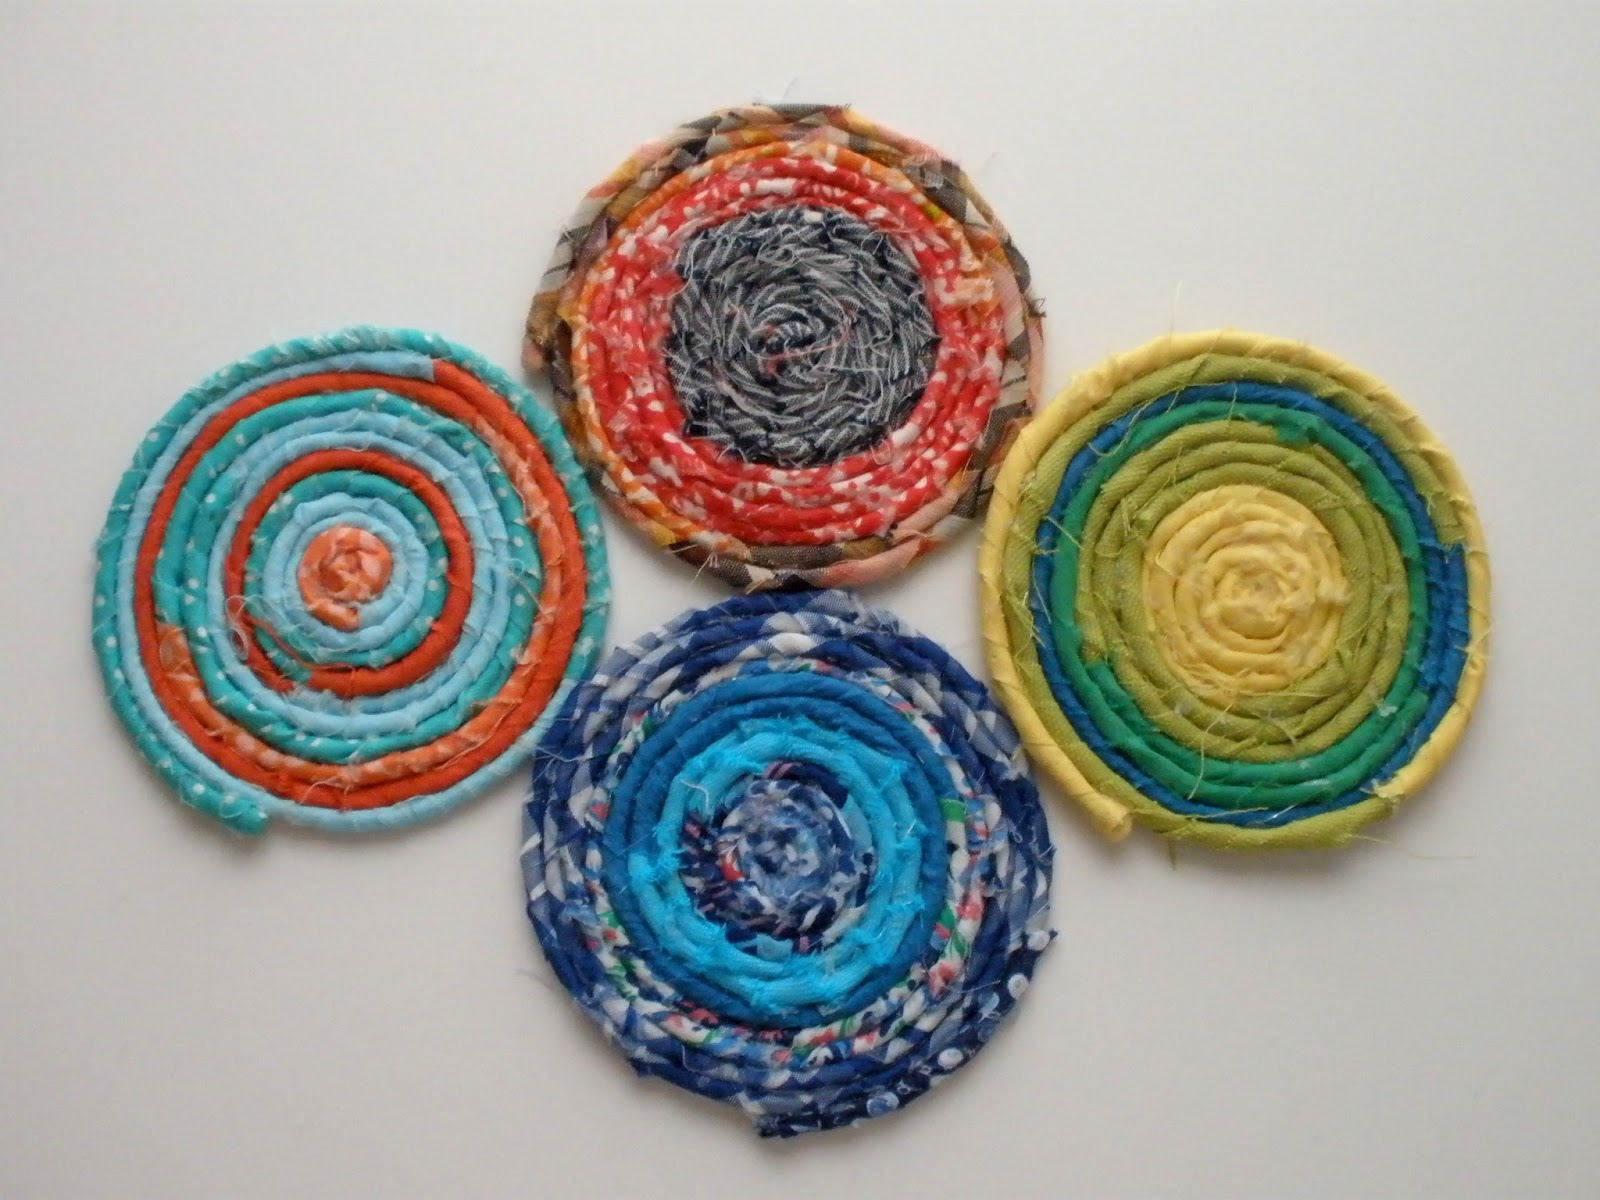 Fabric scrap coasters craft stash bash 11 handmade by for Fabric crafts to make